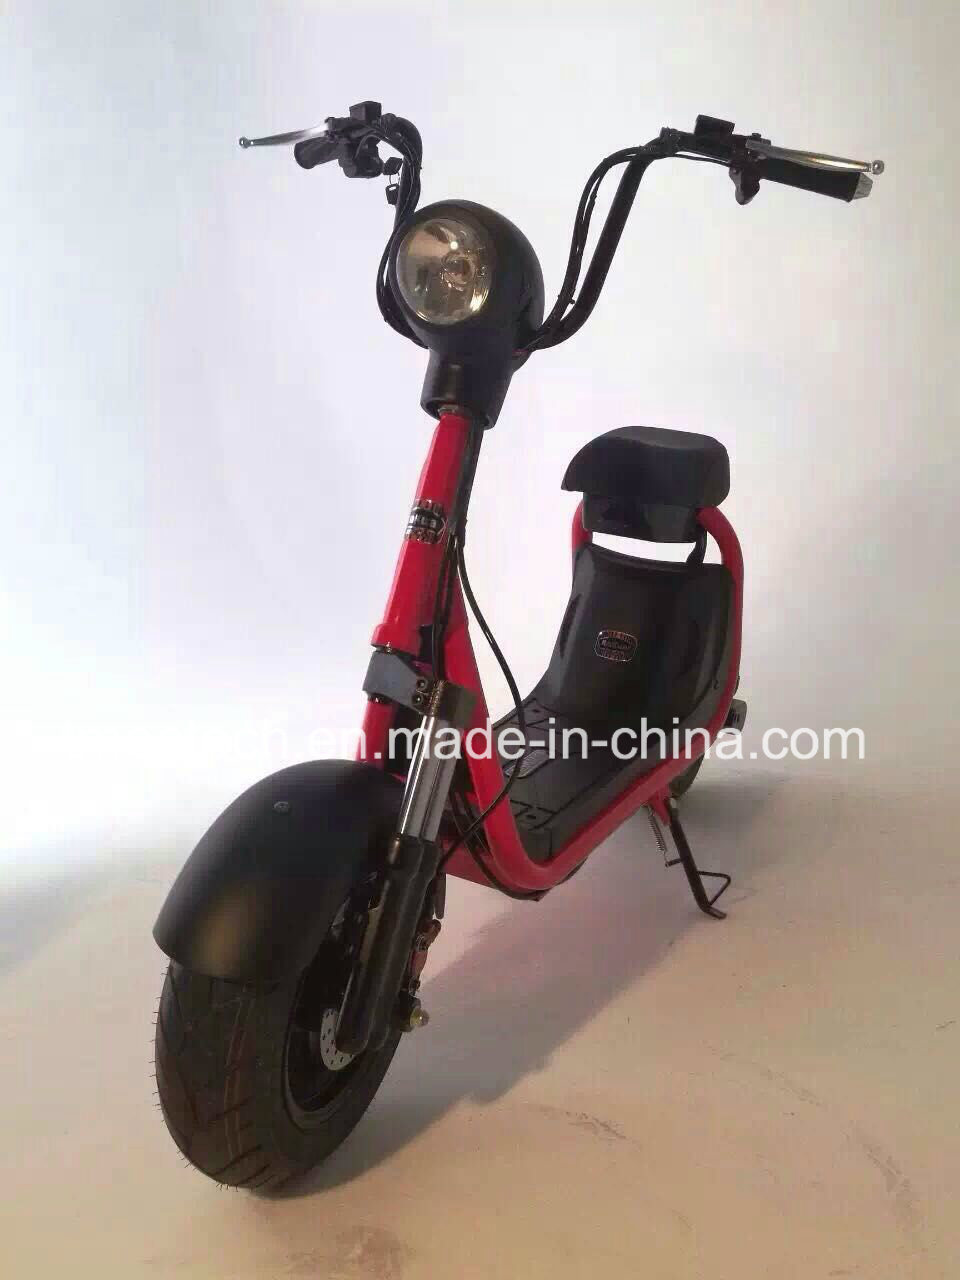 New Design with Patent, Electric Moped